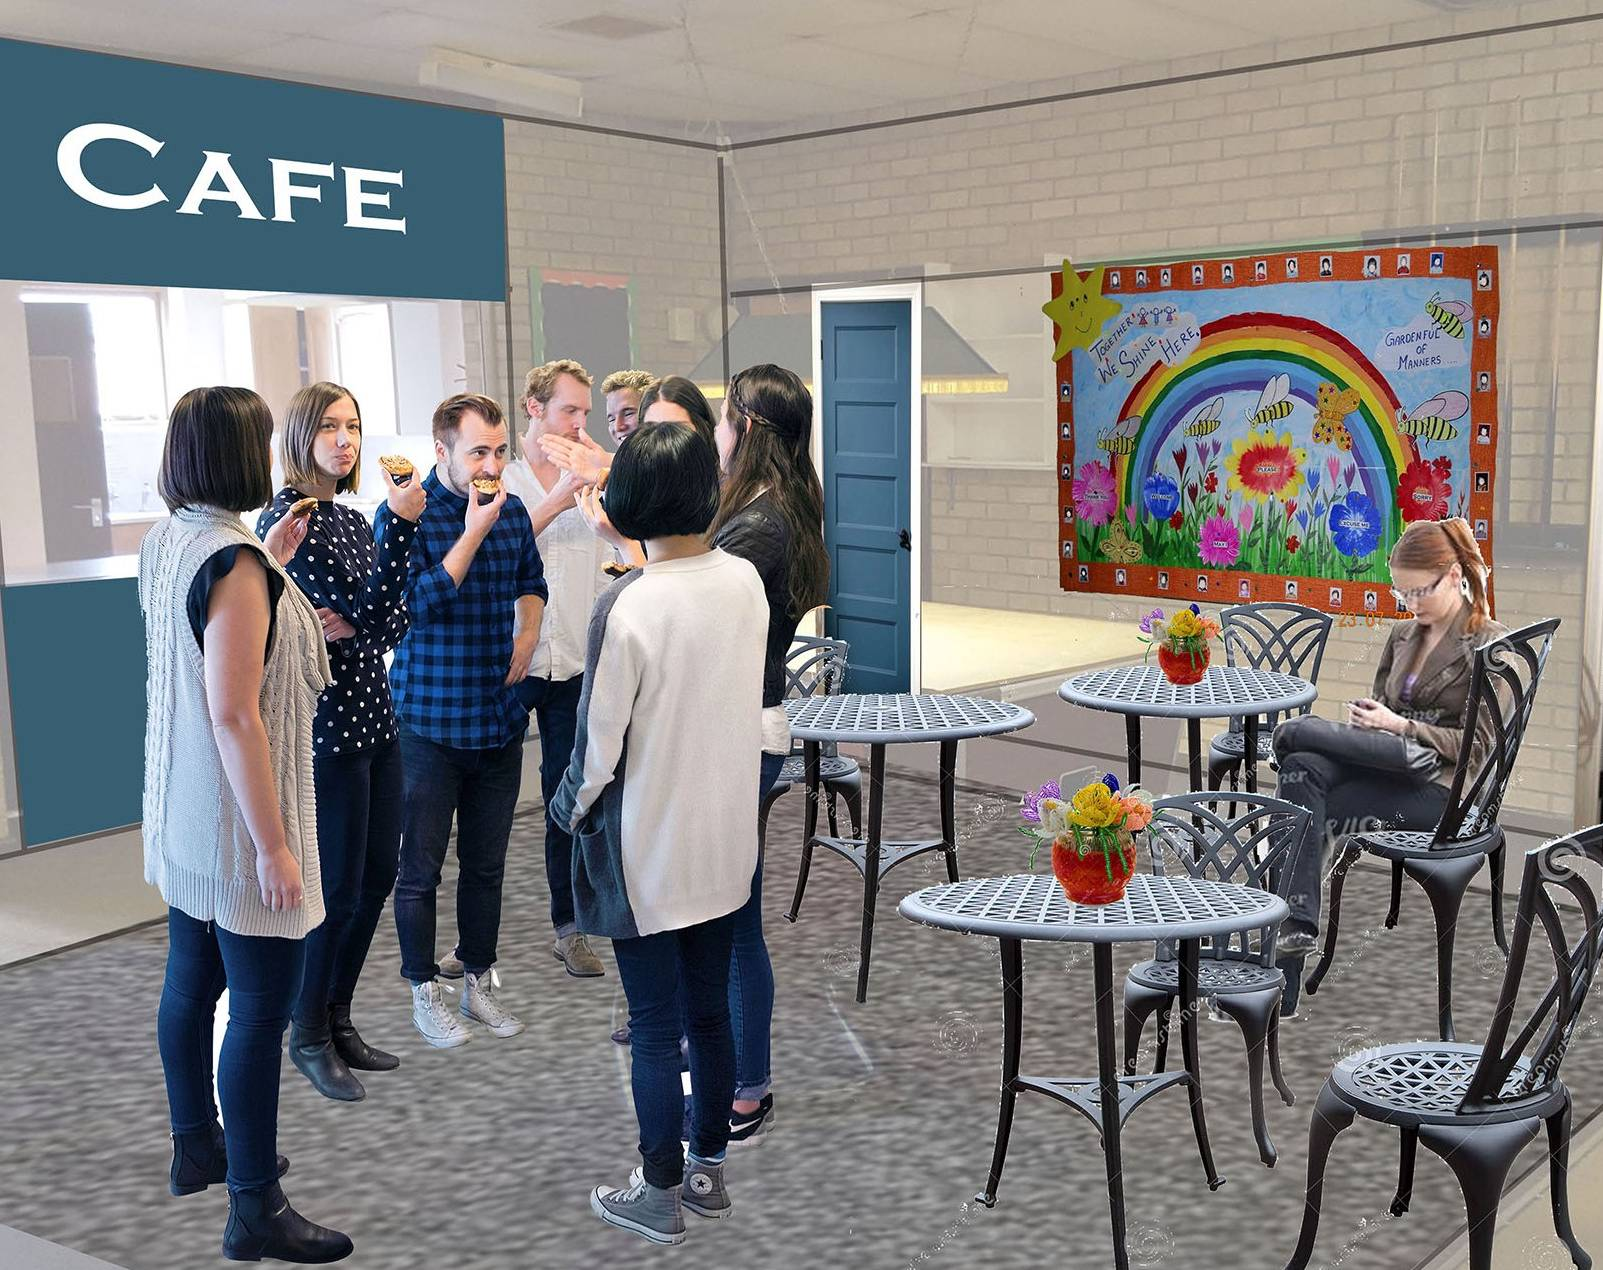 The Space - Field Lane Community Centre - cafe area